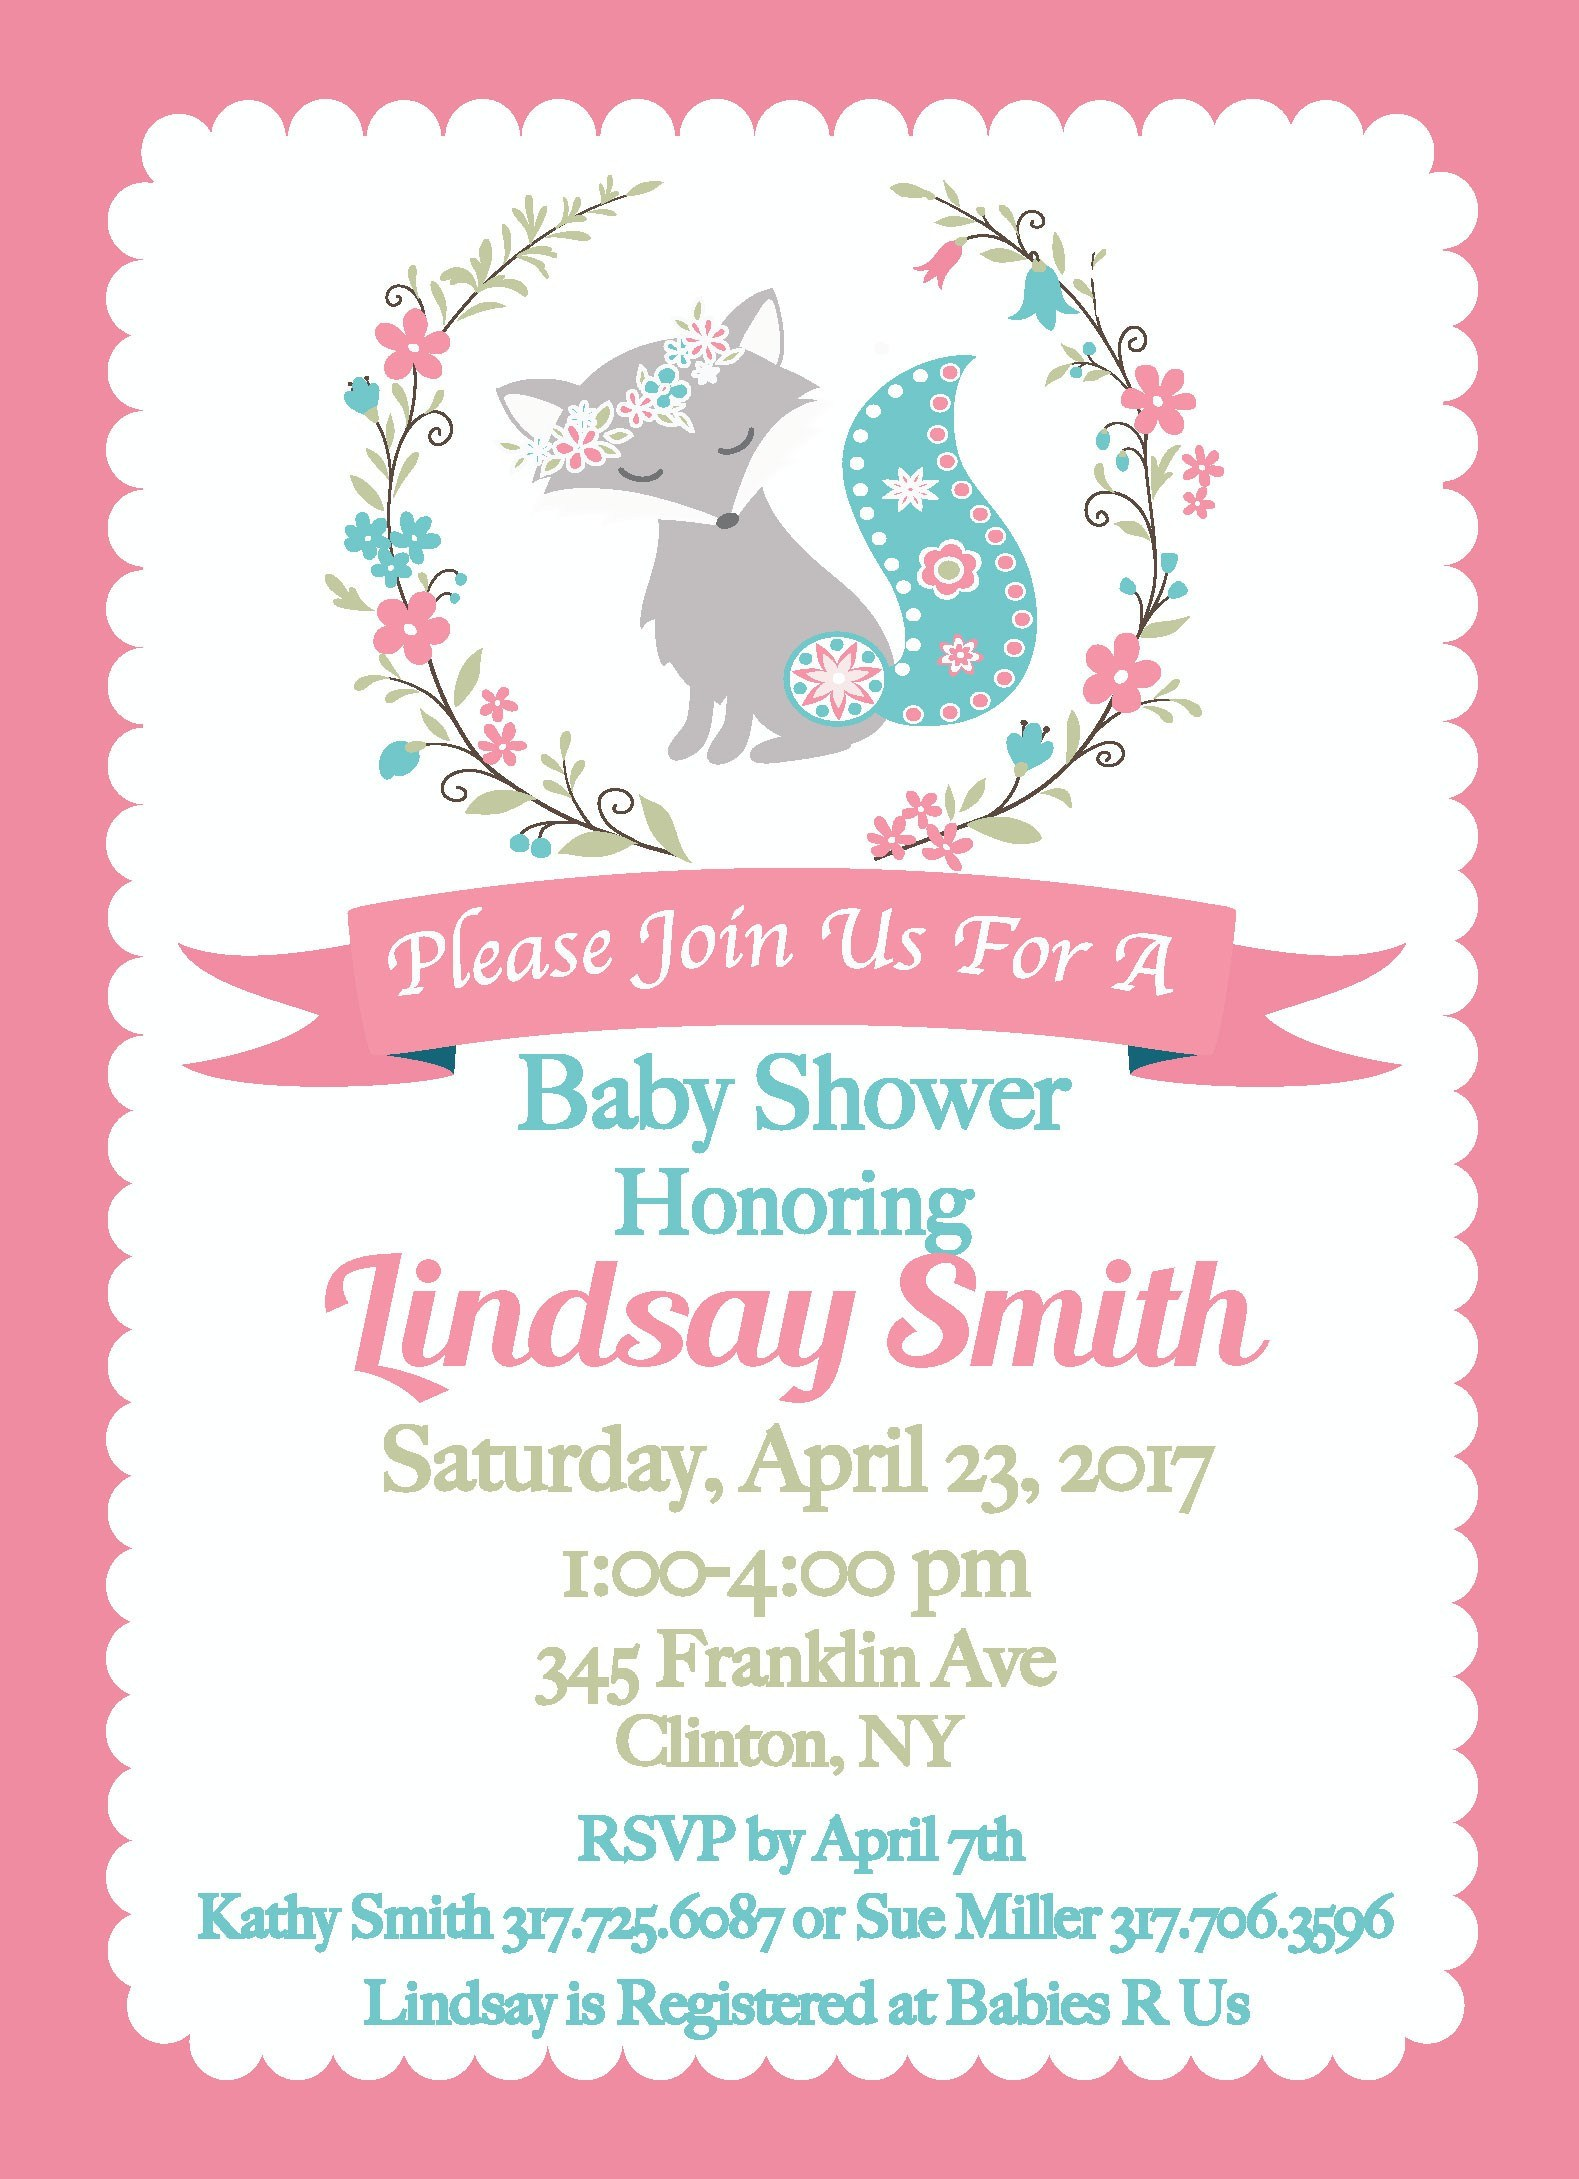 Full Size of Baby Shower:delightful Baby Shower Invitation Wording Picture Designs Baby Shower Invitation Wording Baby Boy Shower Favors Baby Shower Baby Shower Baby Shower Adalah Baby Shower Quotes Baby Shower Wishing Well Best Baby Shower Gifts 2018 Corner Baby Shower Thank You Cards Wording Gallery Bridal